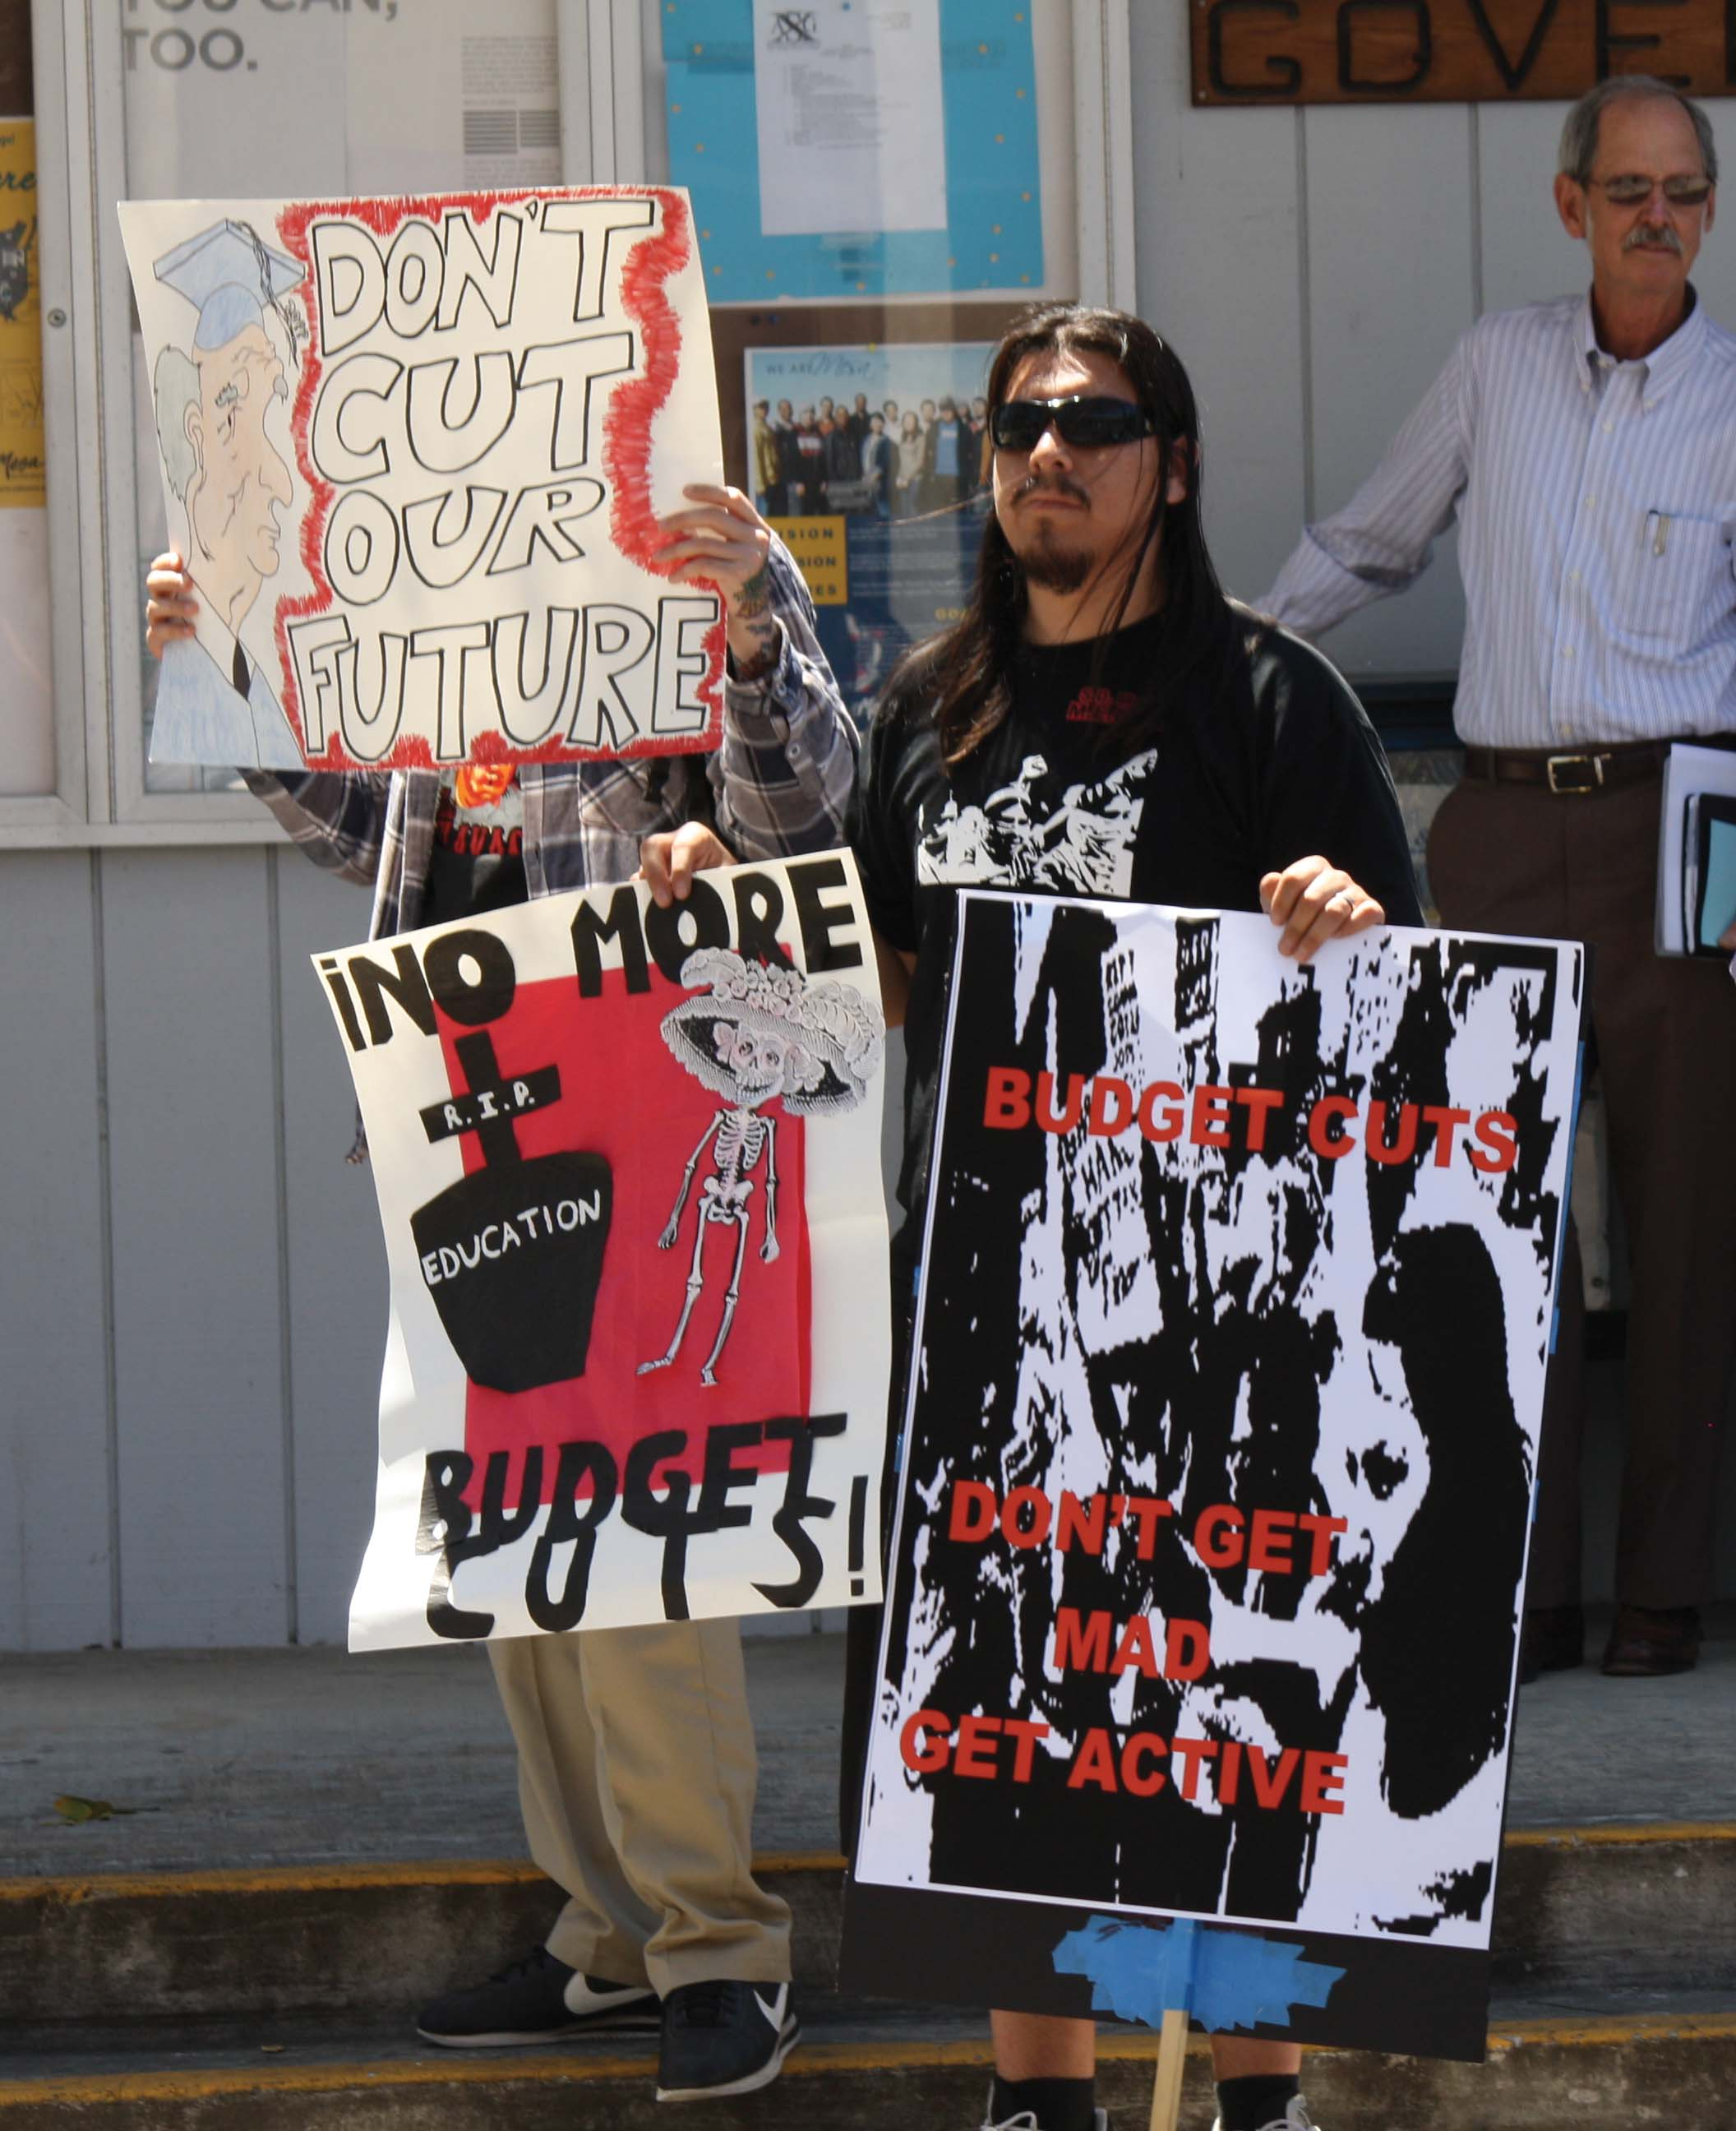 President of M.E.Ch.A, Miguel Murillo, 24, and other students brought signs to the rally to help promote action against educational budget cuts at the rally on April 27.